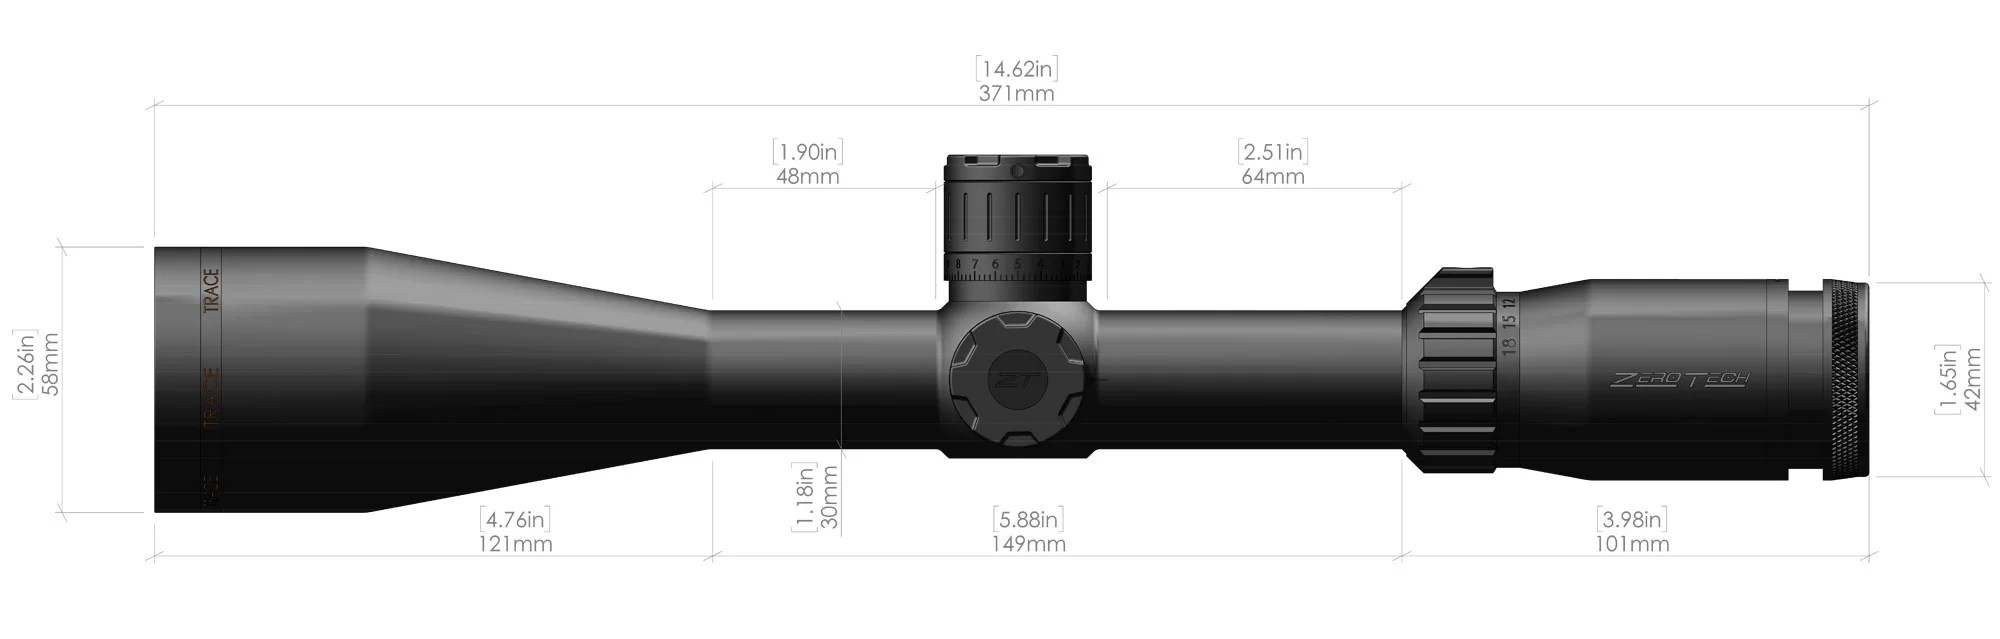 3-18X50mm-Trace-Riflescope-Dimensions